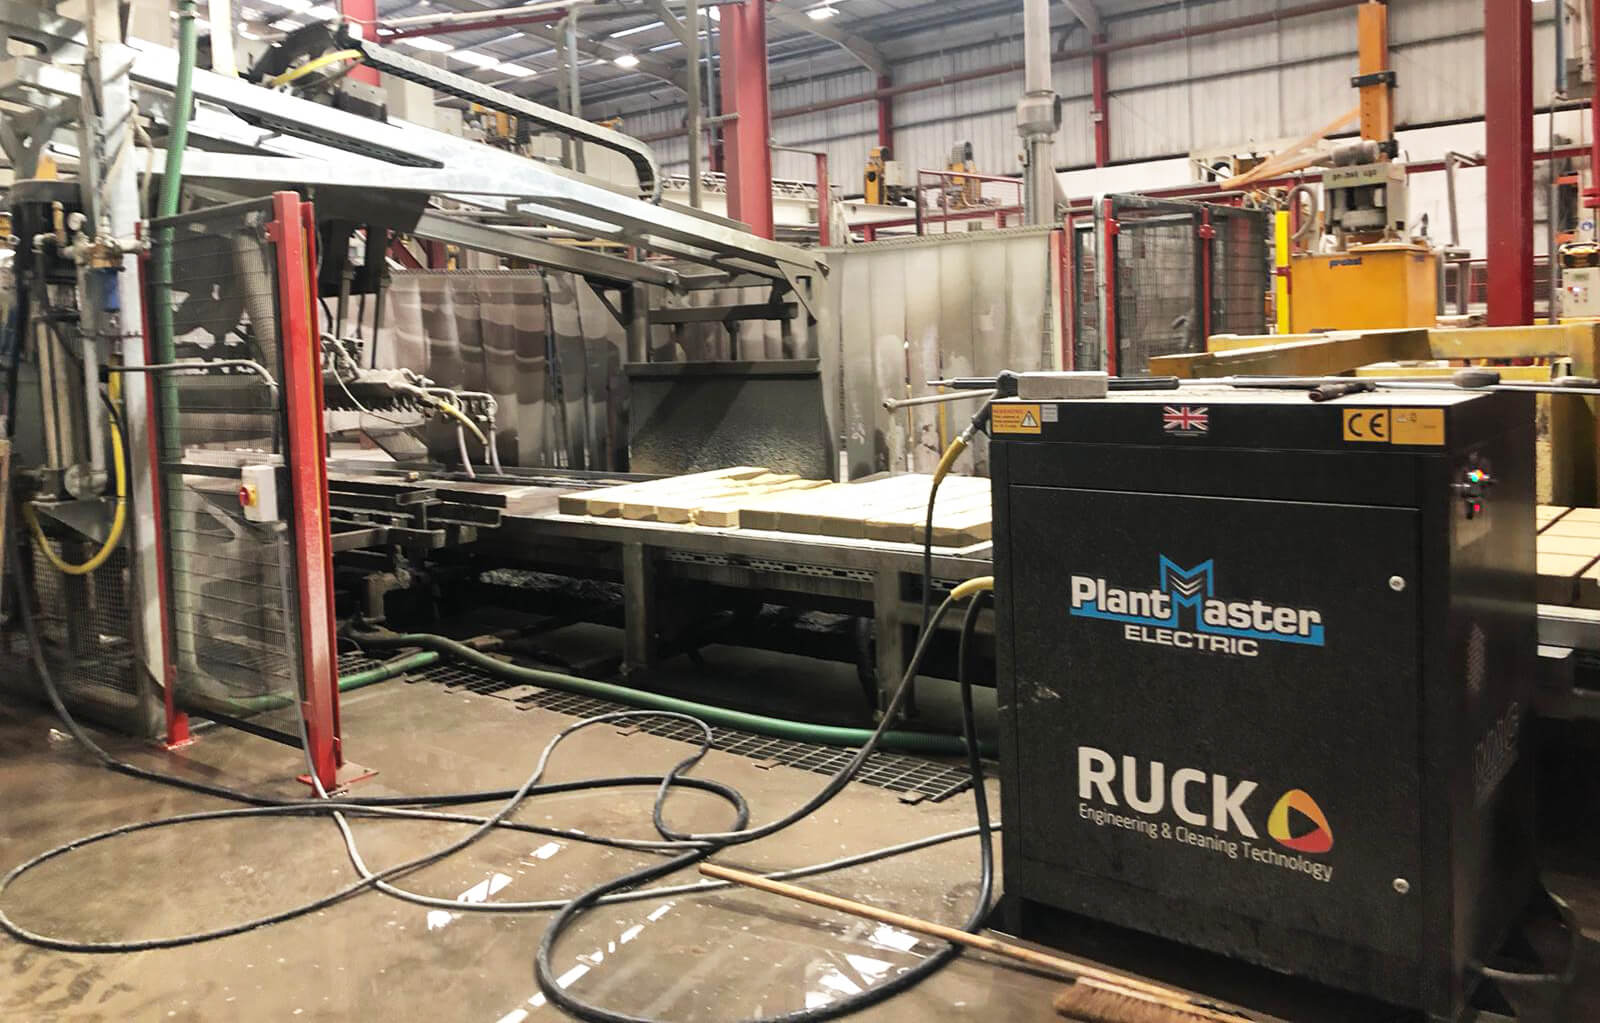 Ruck Engineering - Suppliers of hot and cold and electrically heated pressure washers, industrial floor sweepers and pedestrian and ride-on industrial floor scrubber driers.